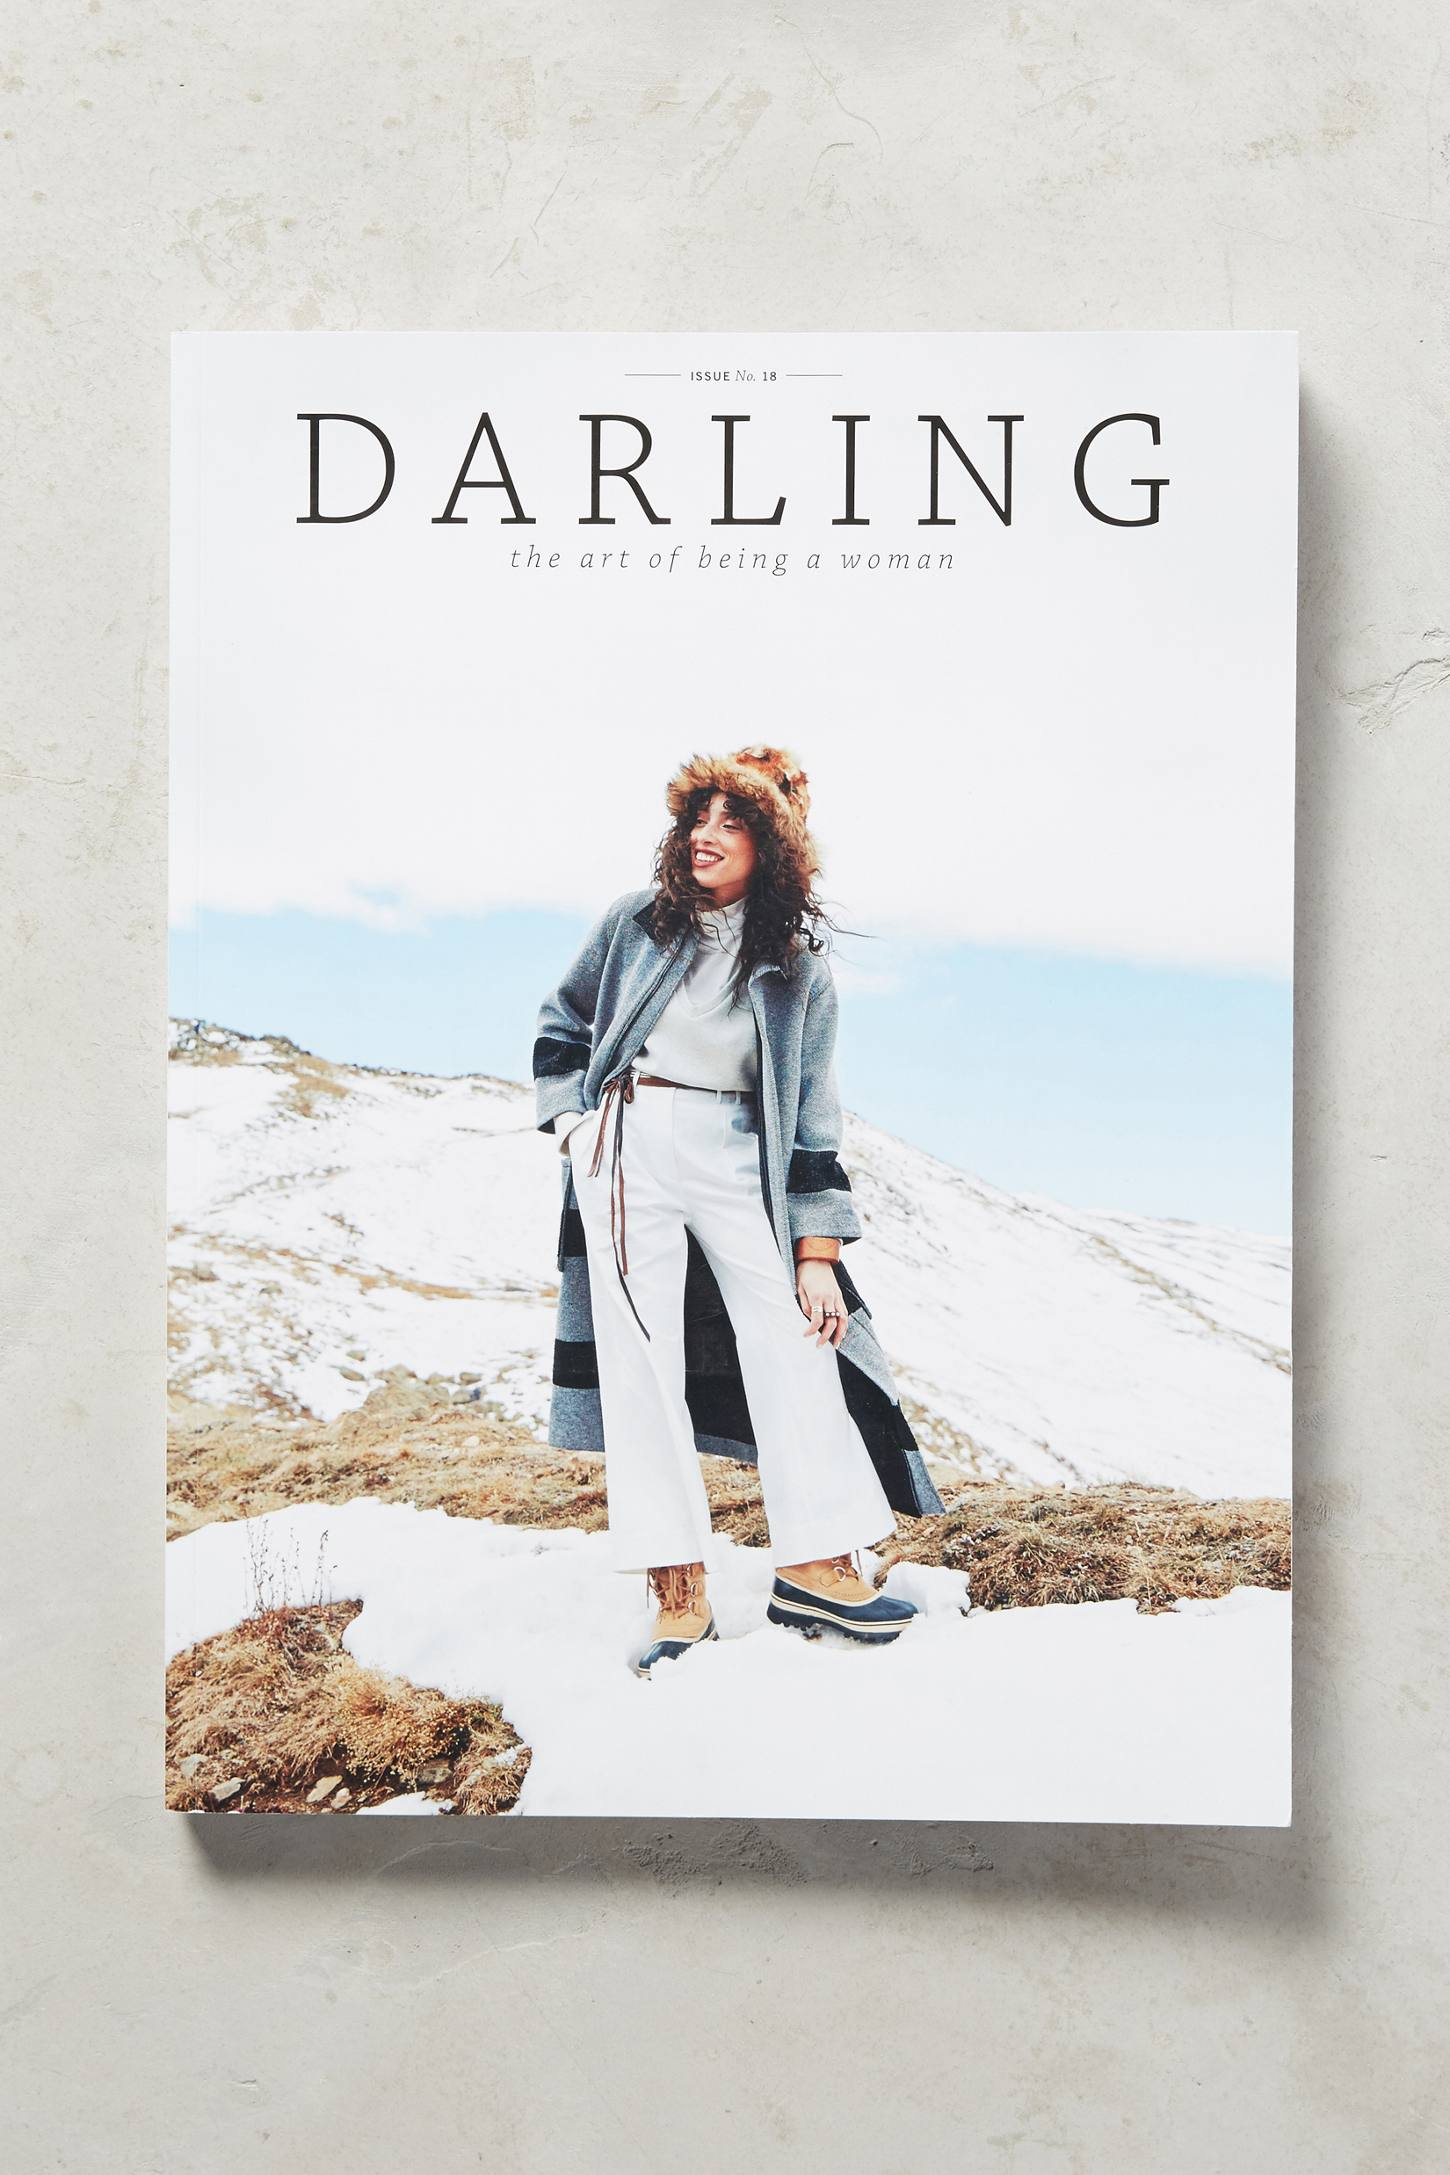 Slide View: 1: Darling Magazine, numéro 18